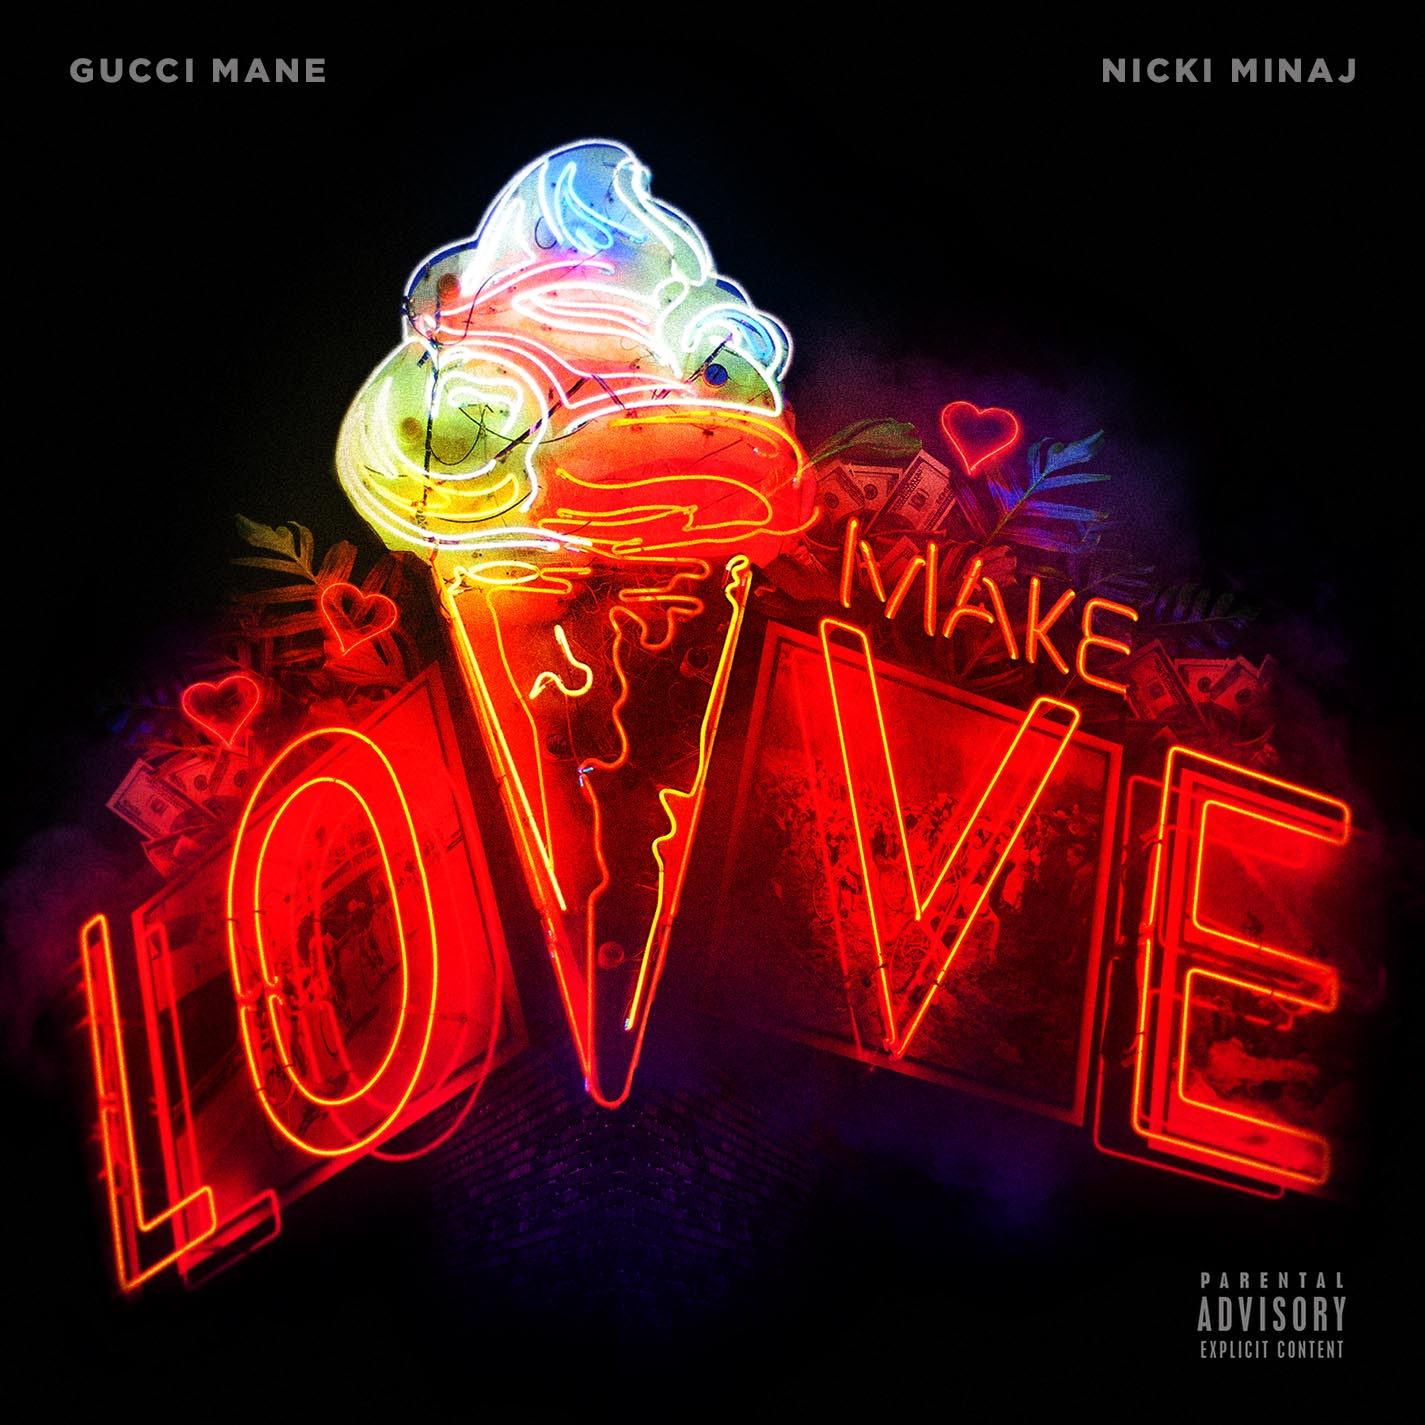 Gucci Mane and Nicki Minaj - Make Love single art